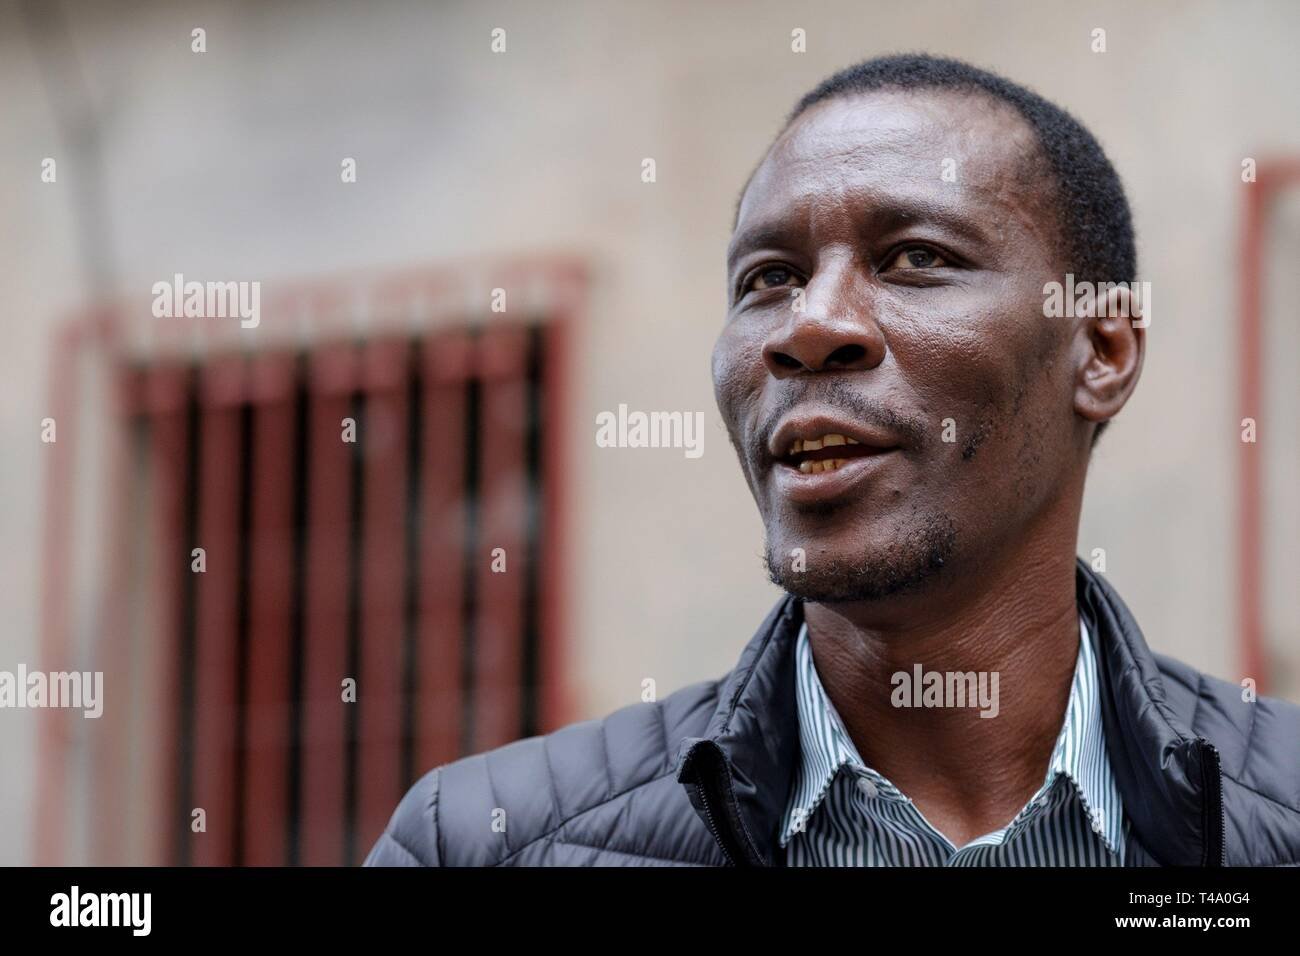 PSOE's number two in Las Palmas list for the Lower Chamber in Madrid, Luc Andre Diouf, is seen in Las Palmas in Gran Canaria, Canary Islands, Madrid, 15 April 2019. Luc Andre Diouf, PSOE's federal secretary for Refugee Policy, was born in Senegal in 1965 and arrived illegally to the Canary Islands 27 years ago as an immigrant. Now, Diouf, who speaks up to 6 different languages, is one of the socialist candidates for the Lower House. EFE/ Ángel Medina G. - Stock Image